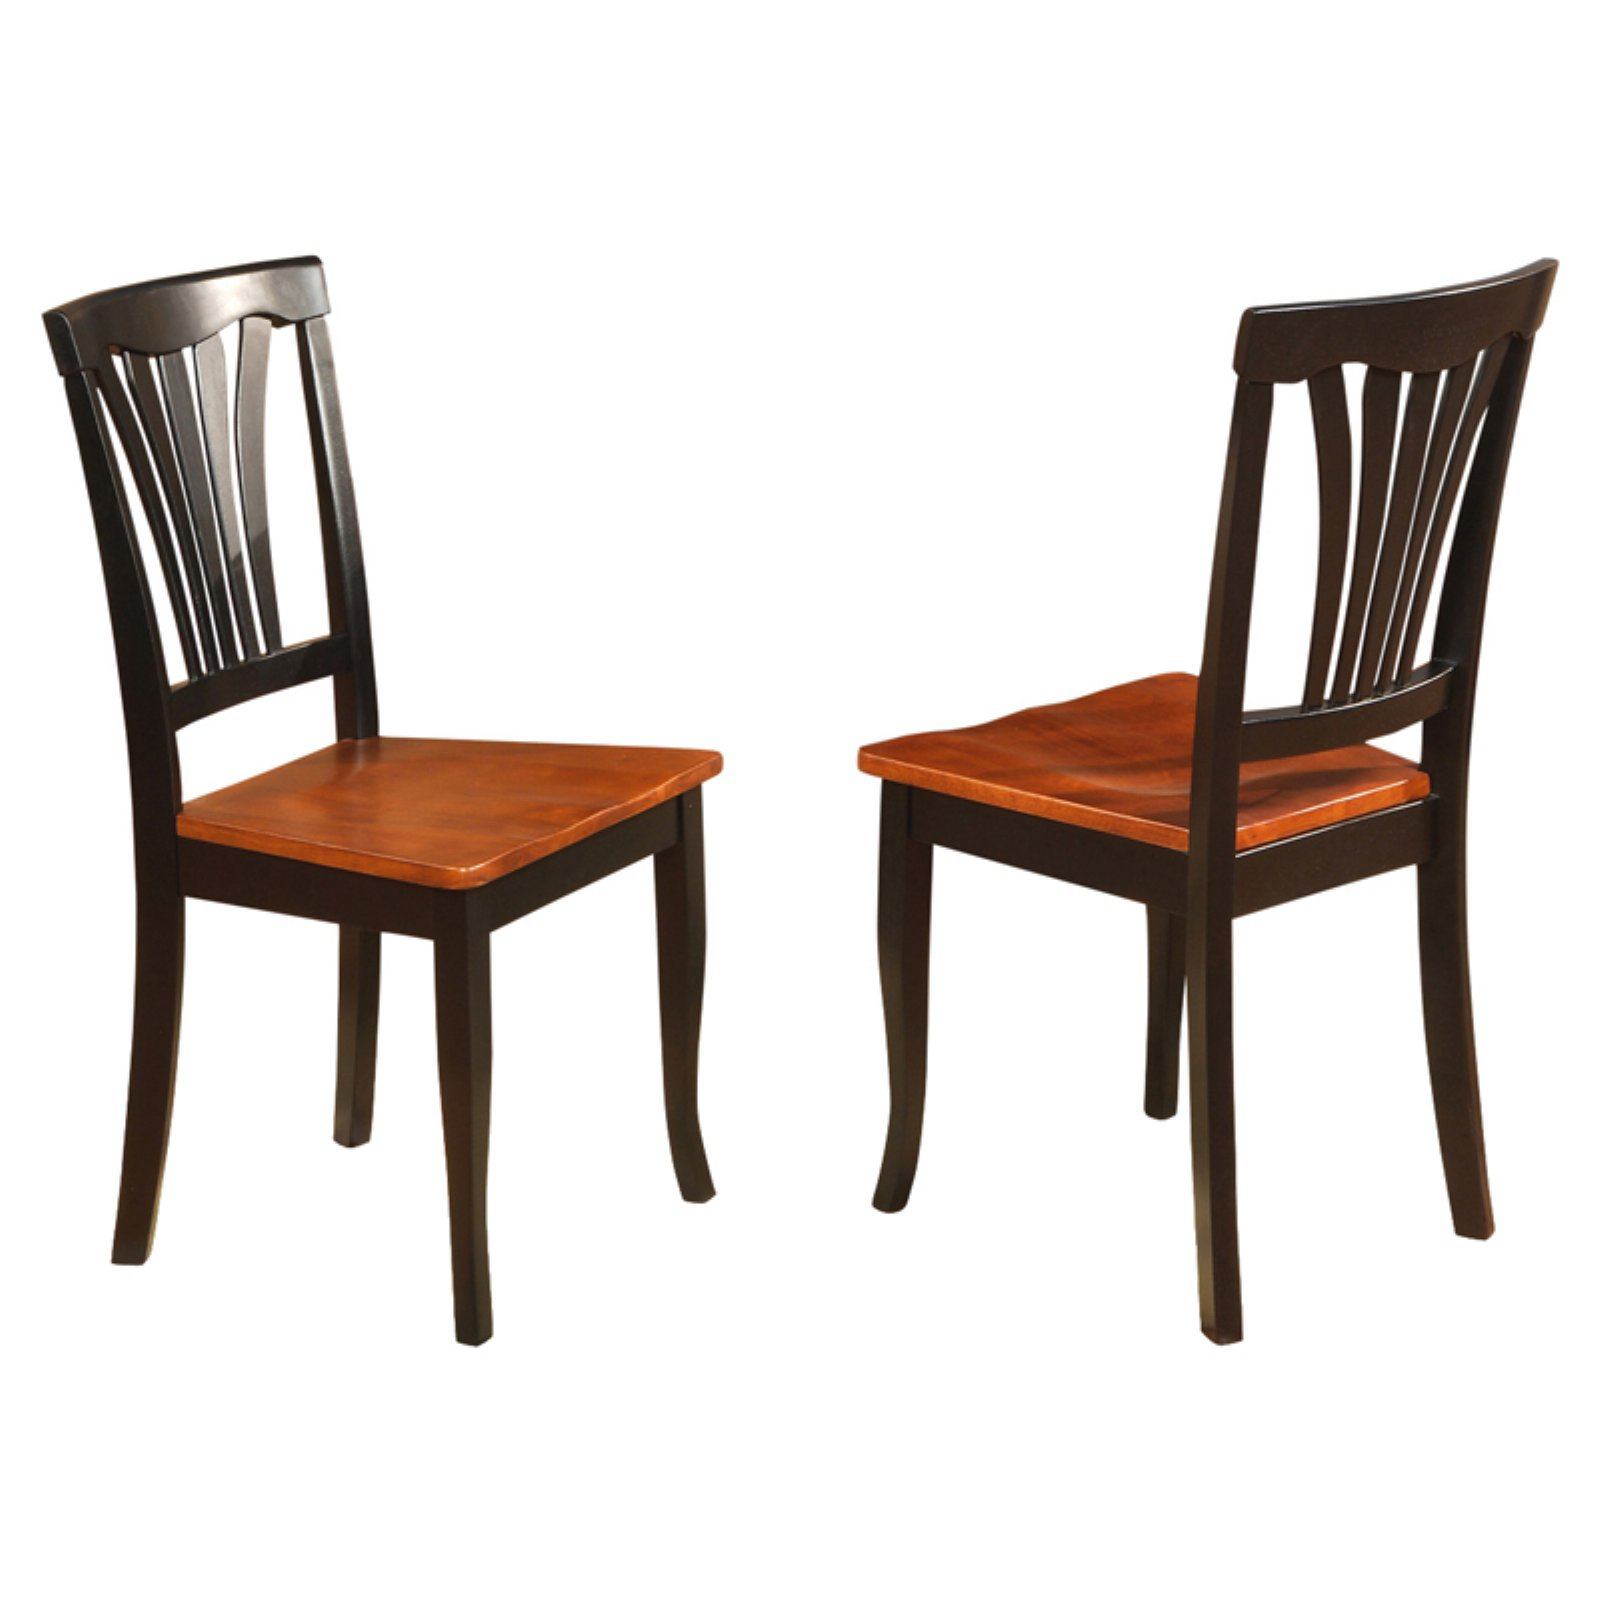 East West Furniture Avon Dining Chair with Wooden Seat - Set of 2